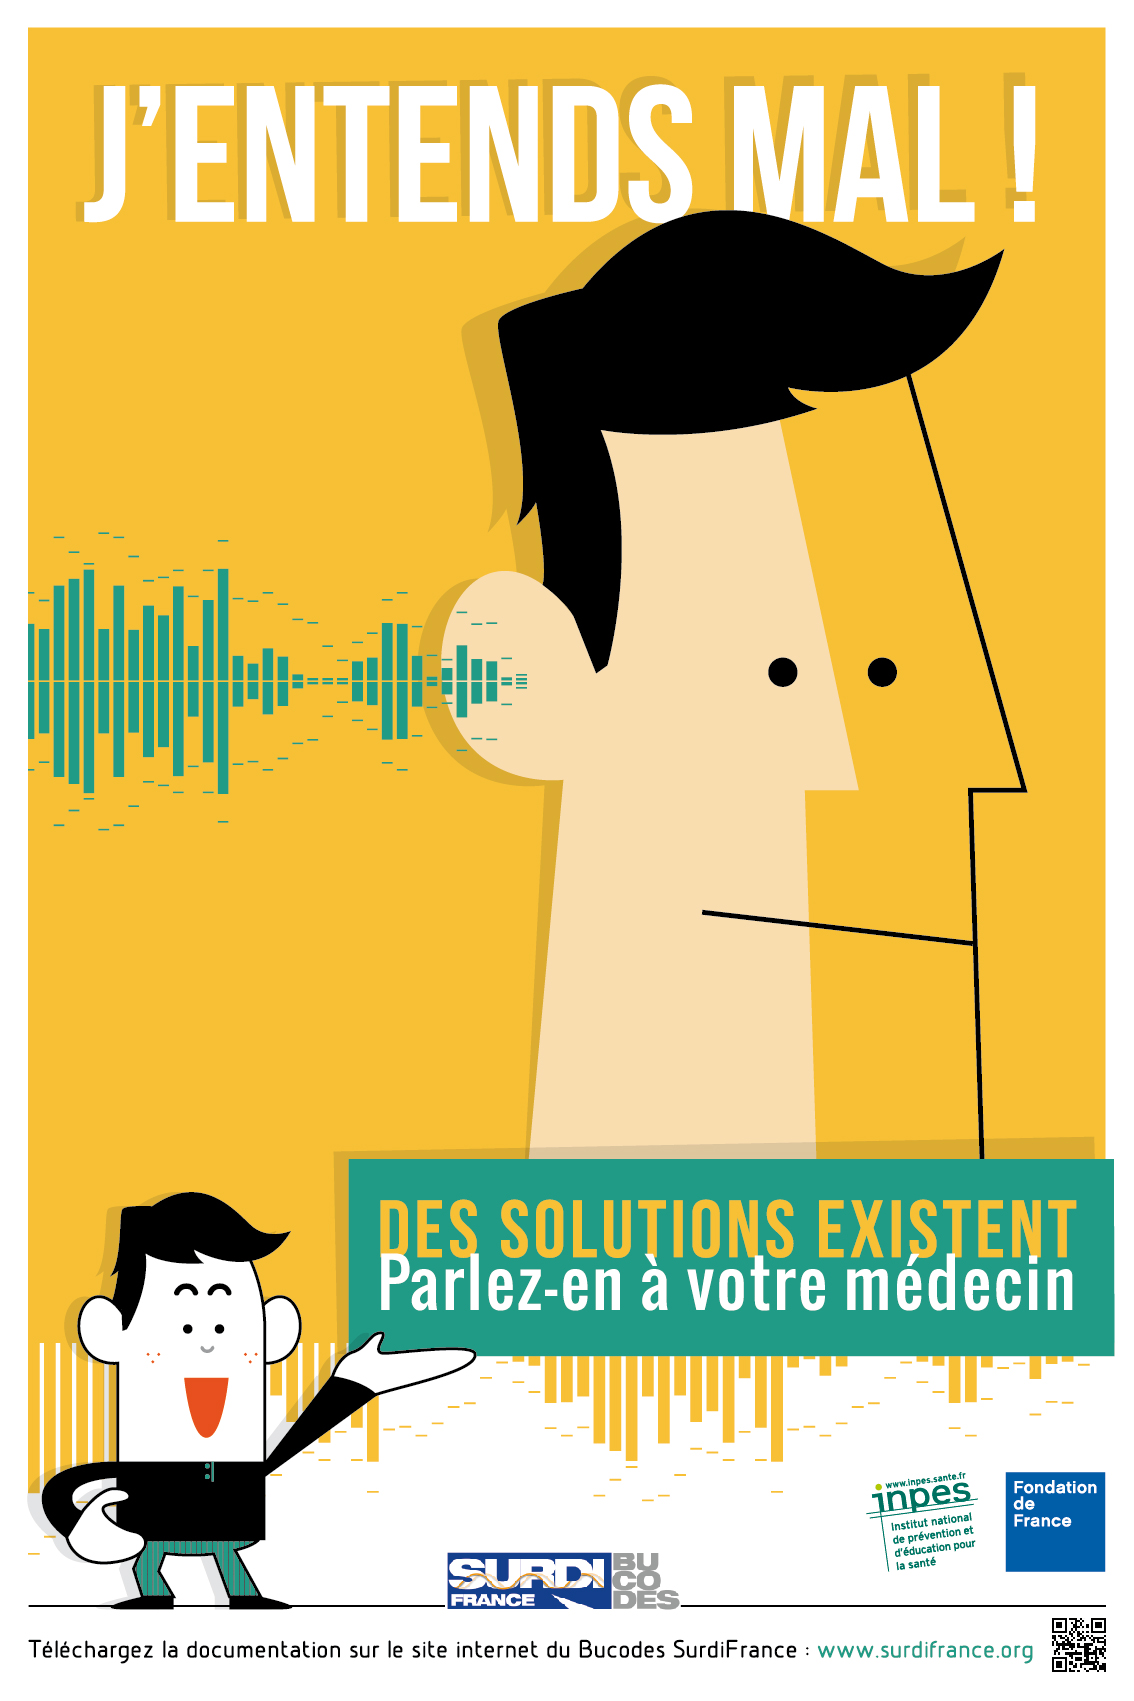 Affiche J'entends mal, quelles solutions